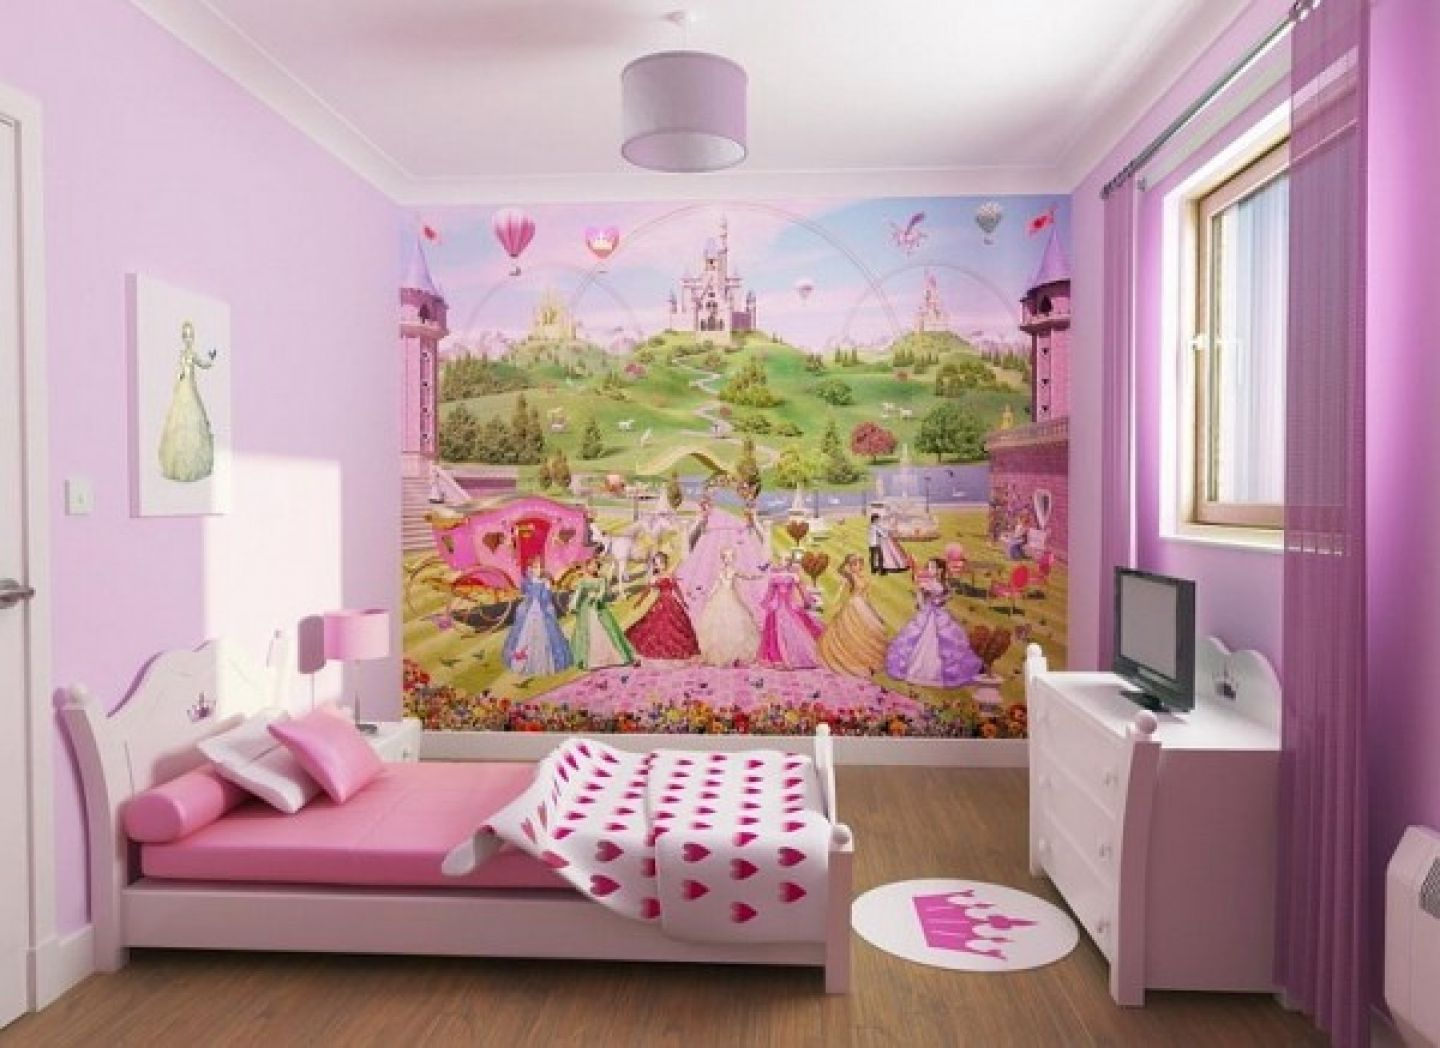 girls' bedroom style | bedrooms, small bedroom decorating and room